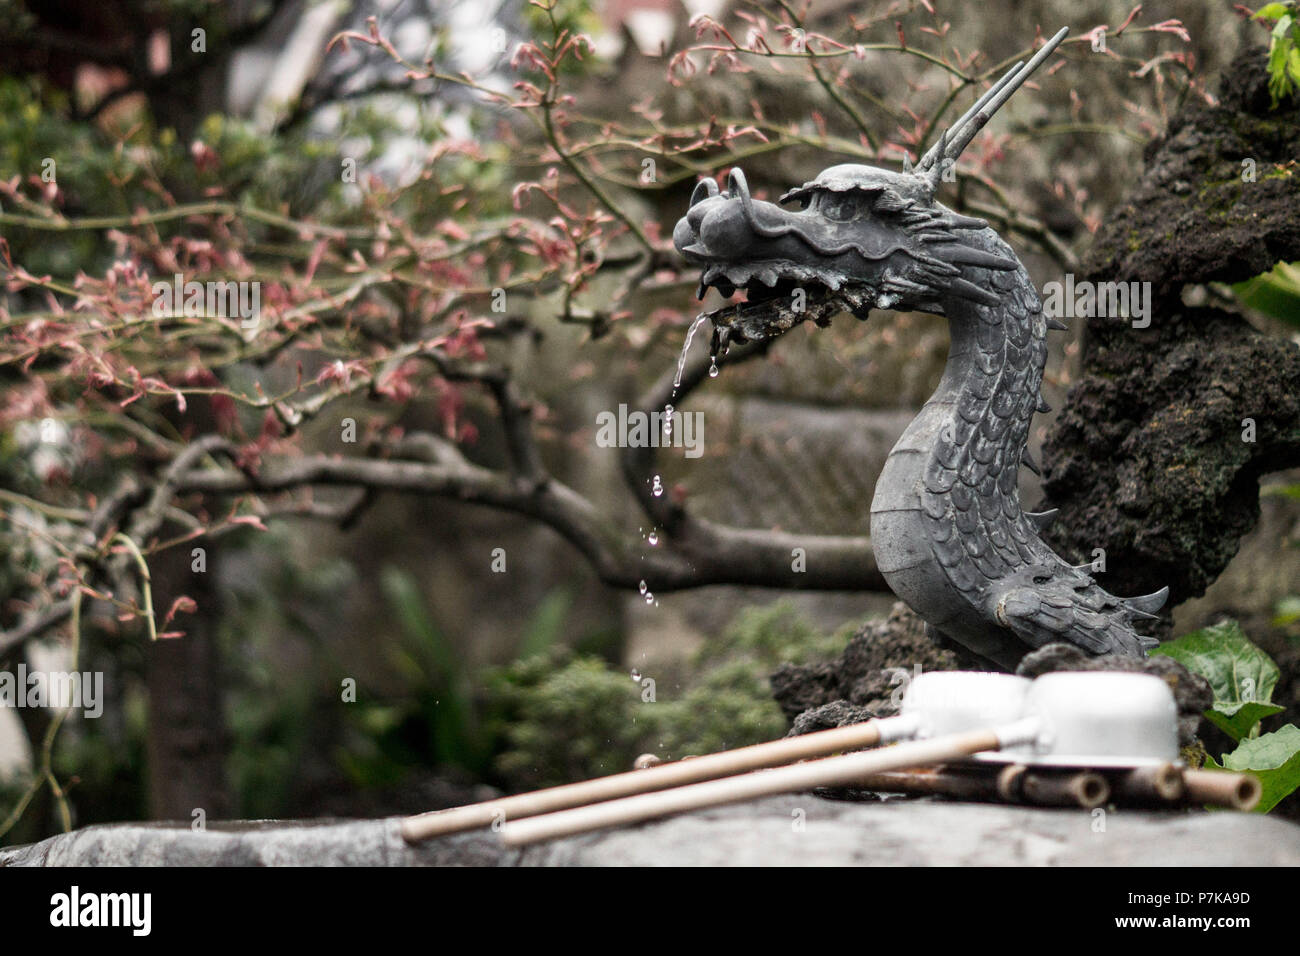 A small fountain in the form of a dragon in a Japanese garden - Stock Image